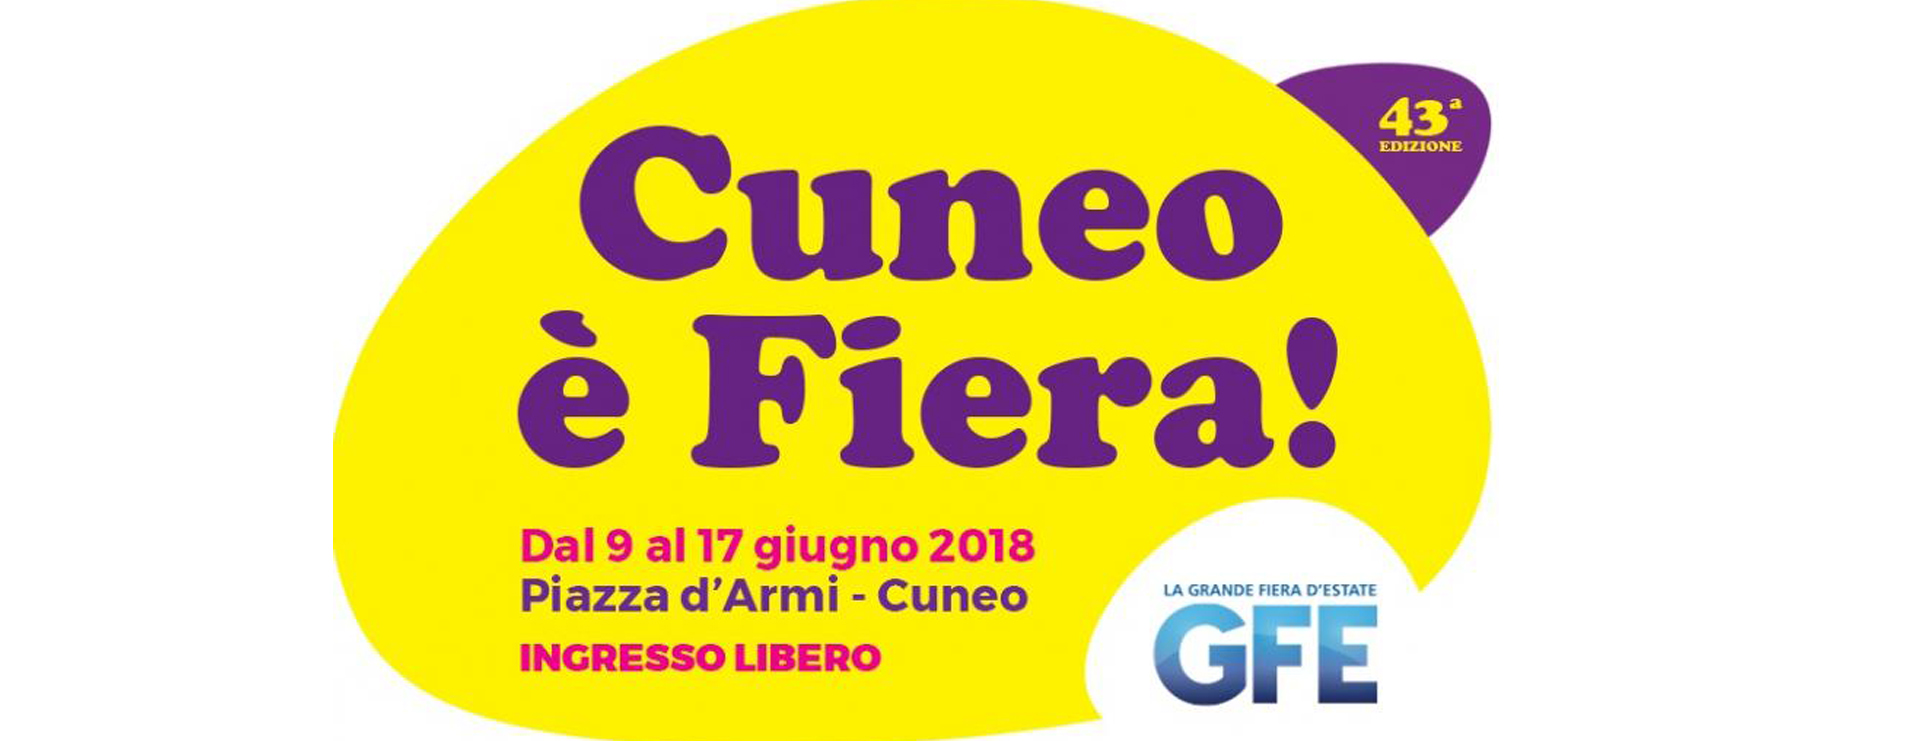 GRANDE FIERA D'ESTATE 2018